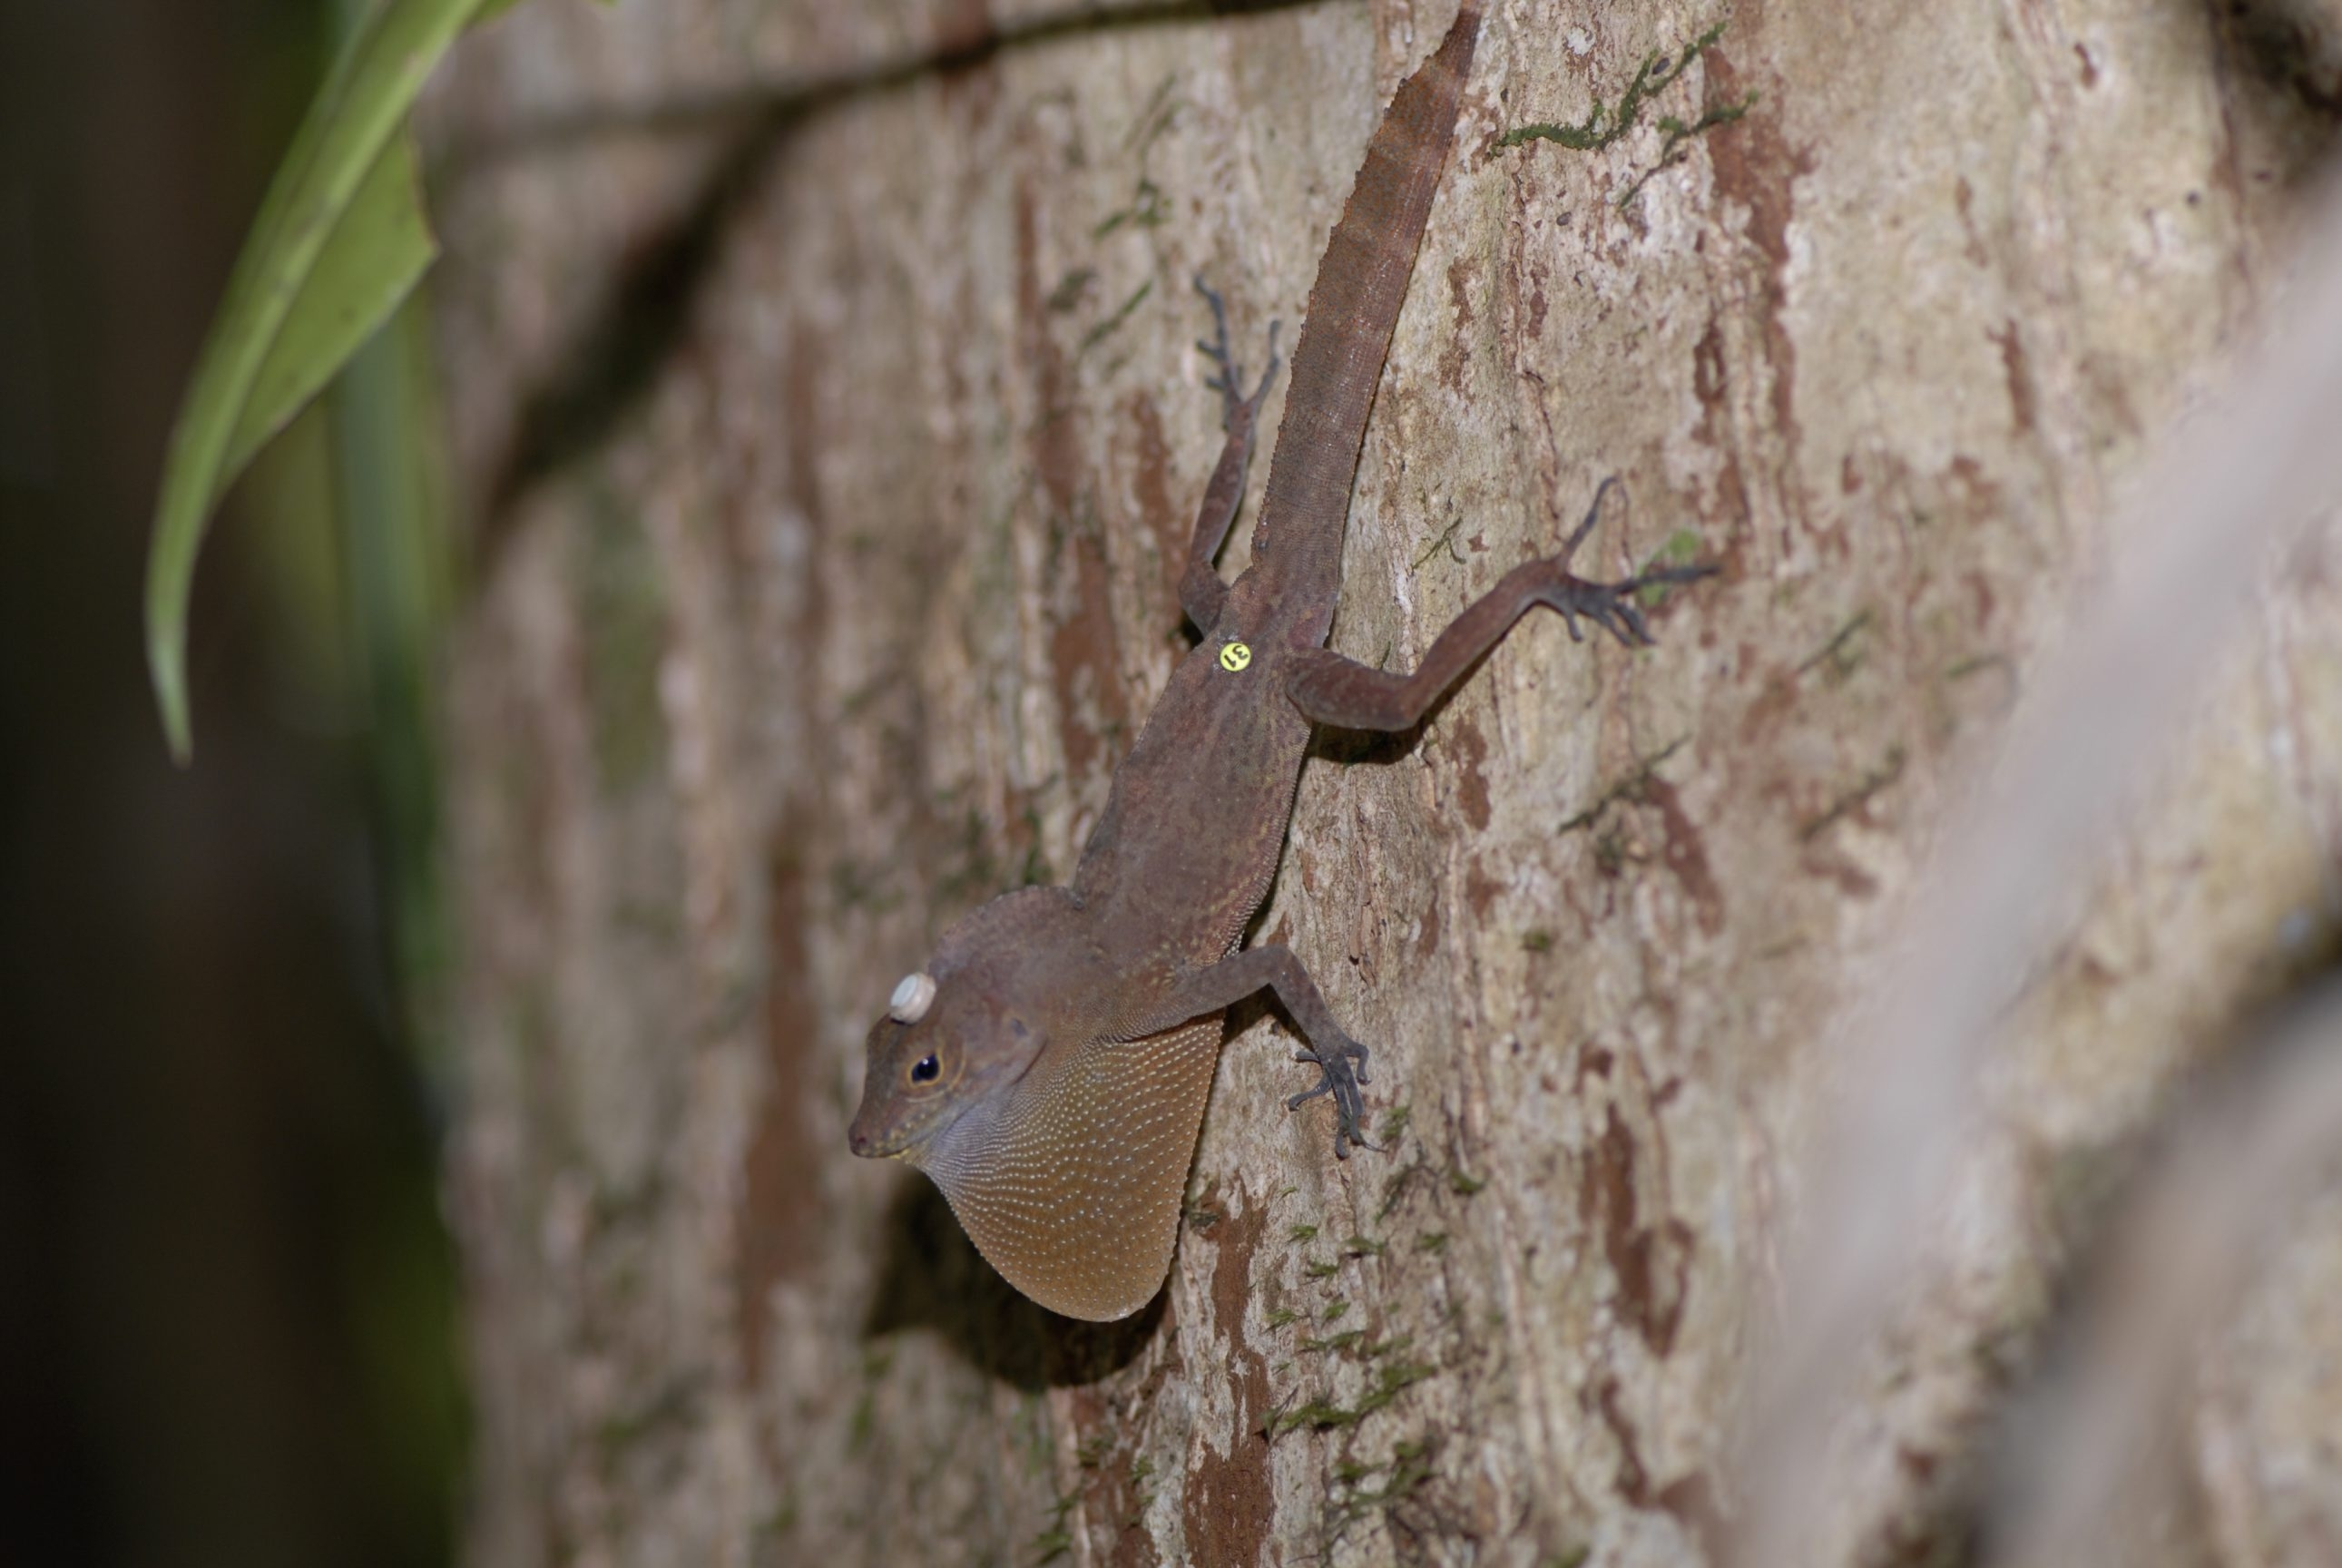 Anoles, like this trunk-ground species in Puerto Rico, make it back to their territory through all obstacles. A biologist has turned detective in an effort to learn how the lizards, which never leave their homes in the dense rain forest, typically find their way back if moved.